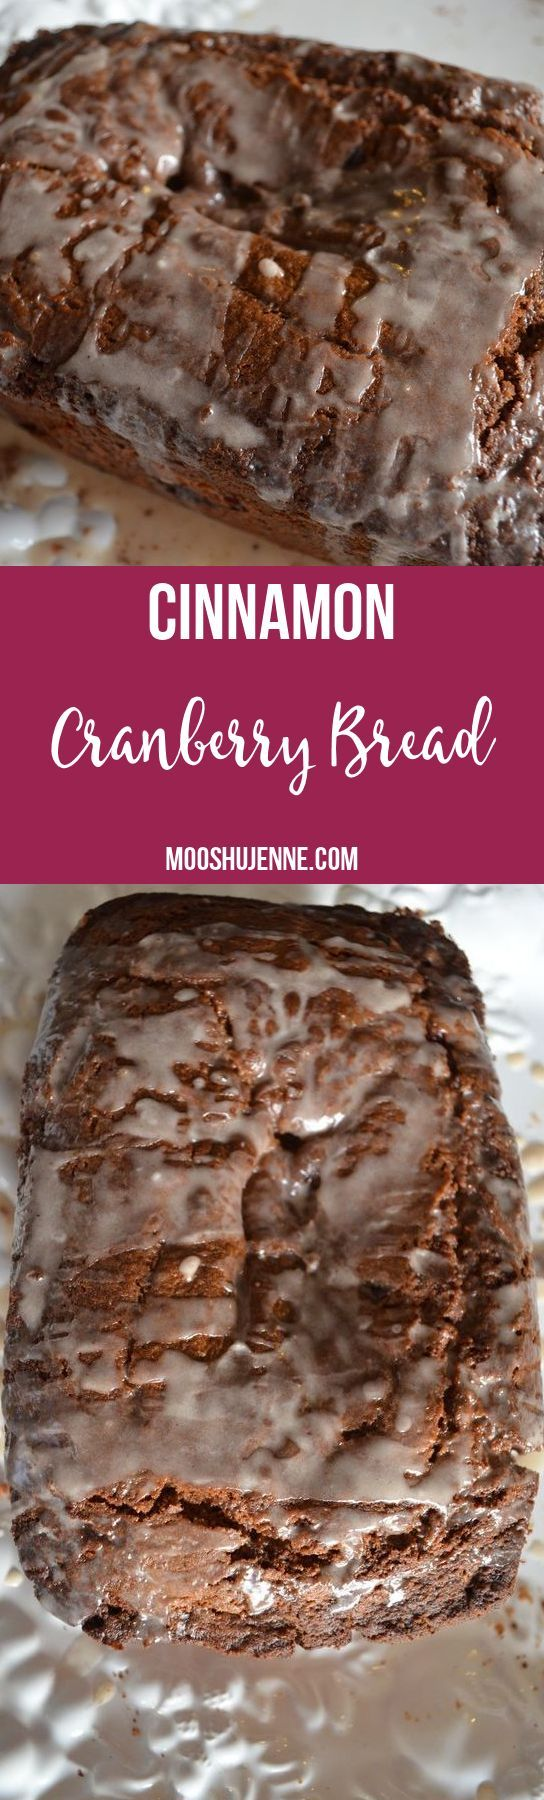 Cinnamon cranberry bread quick recipe with glazed topping. This is the perfect bread to make to gift for the holidays. Wrap with parchment paper.